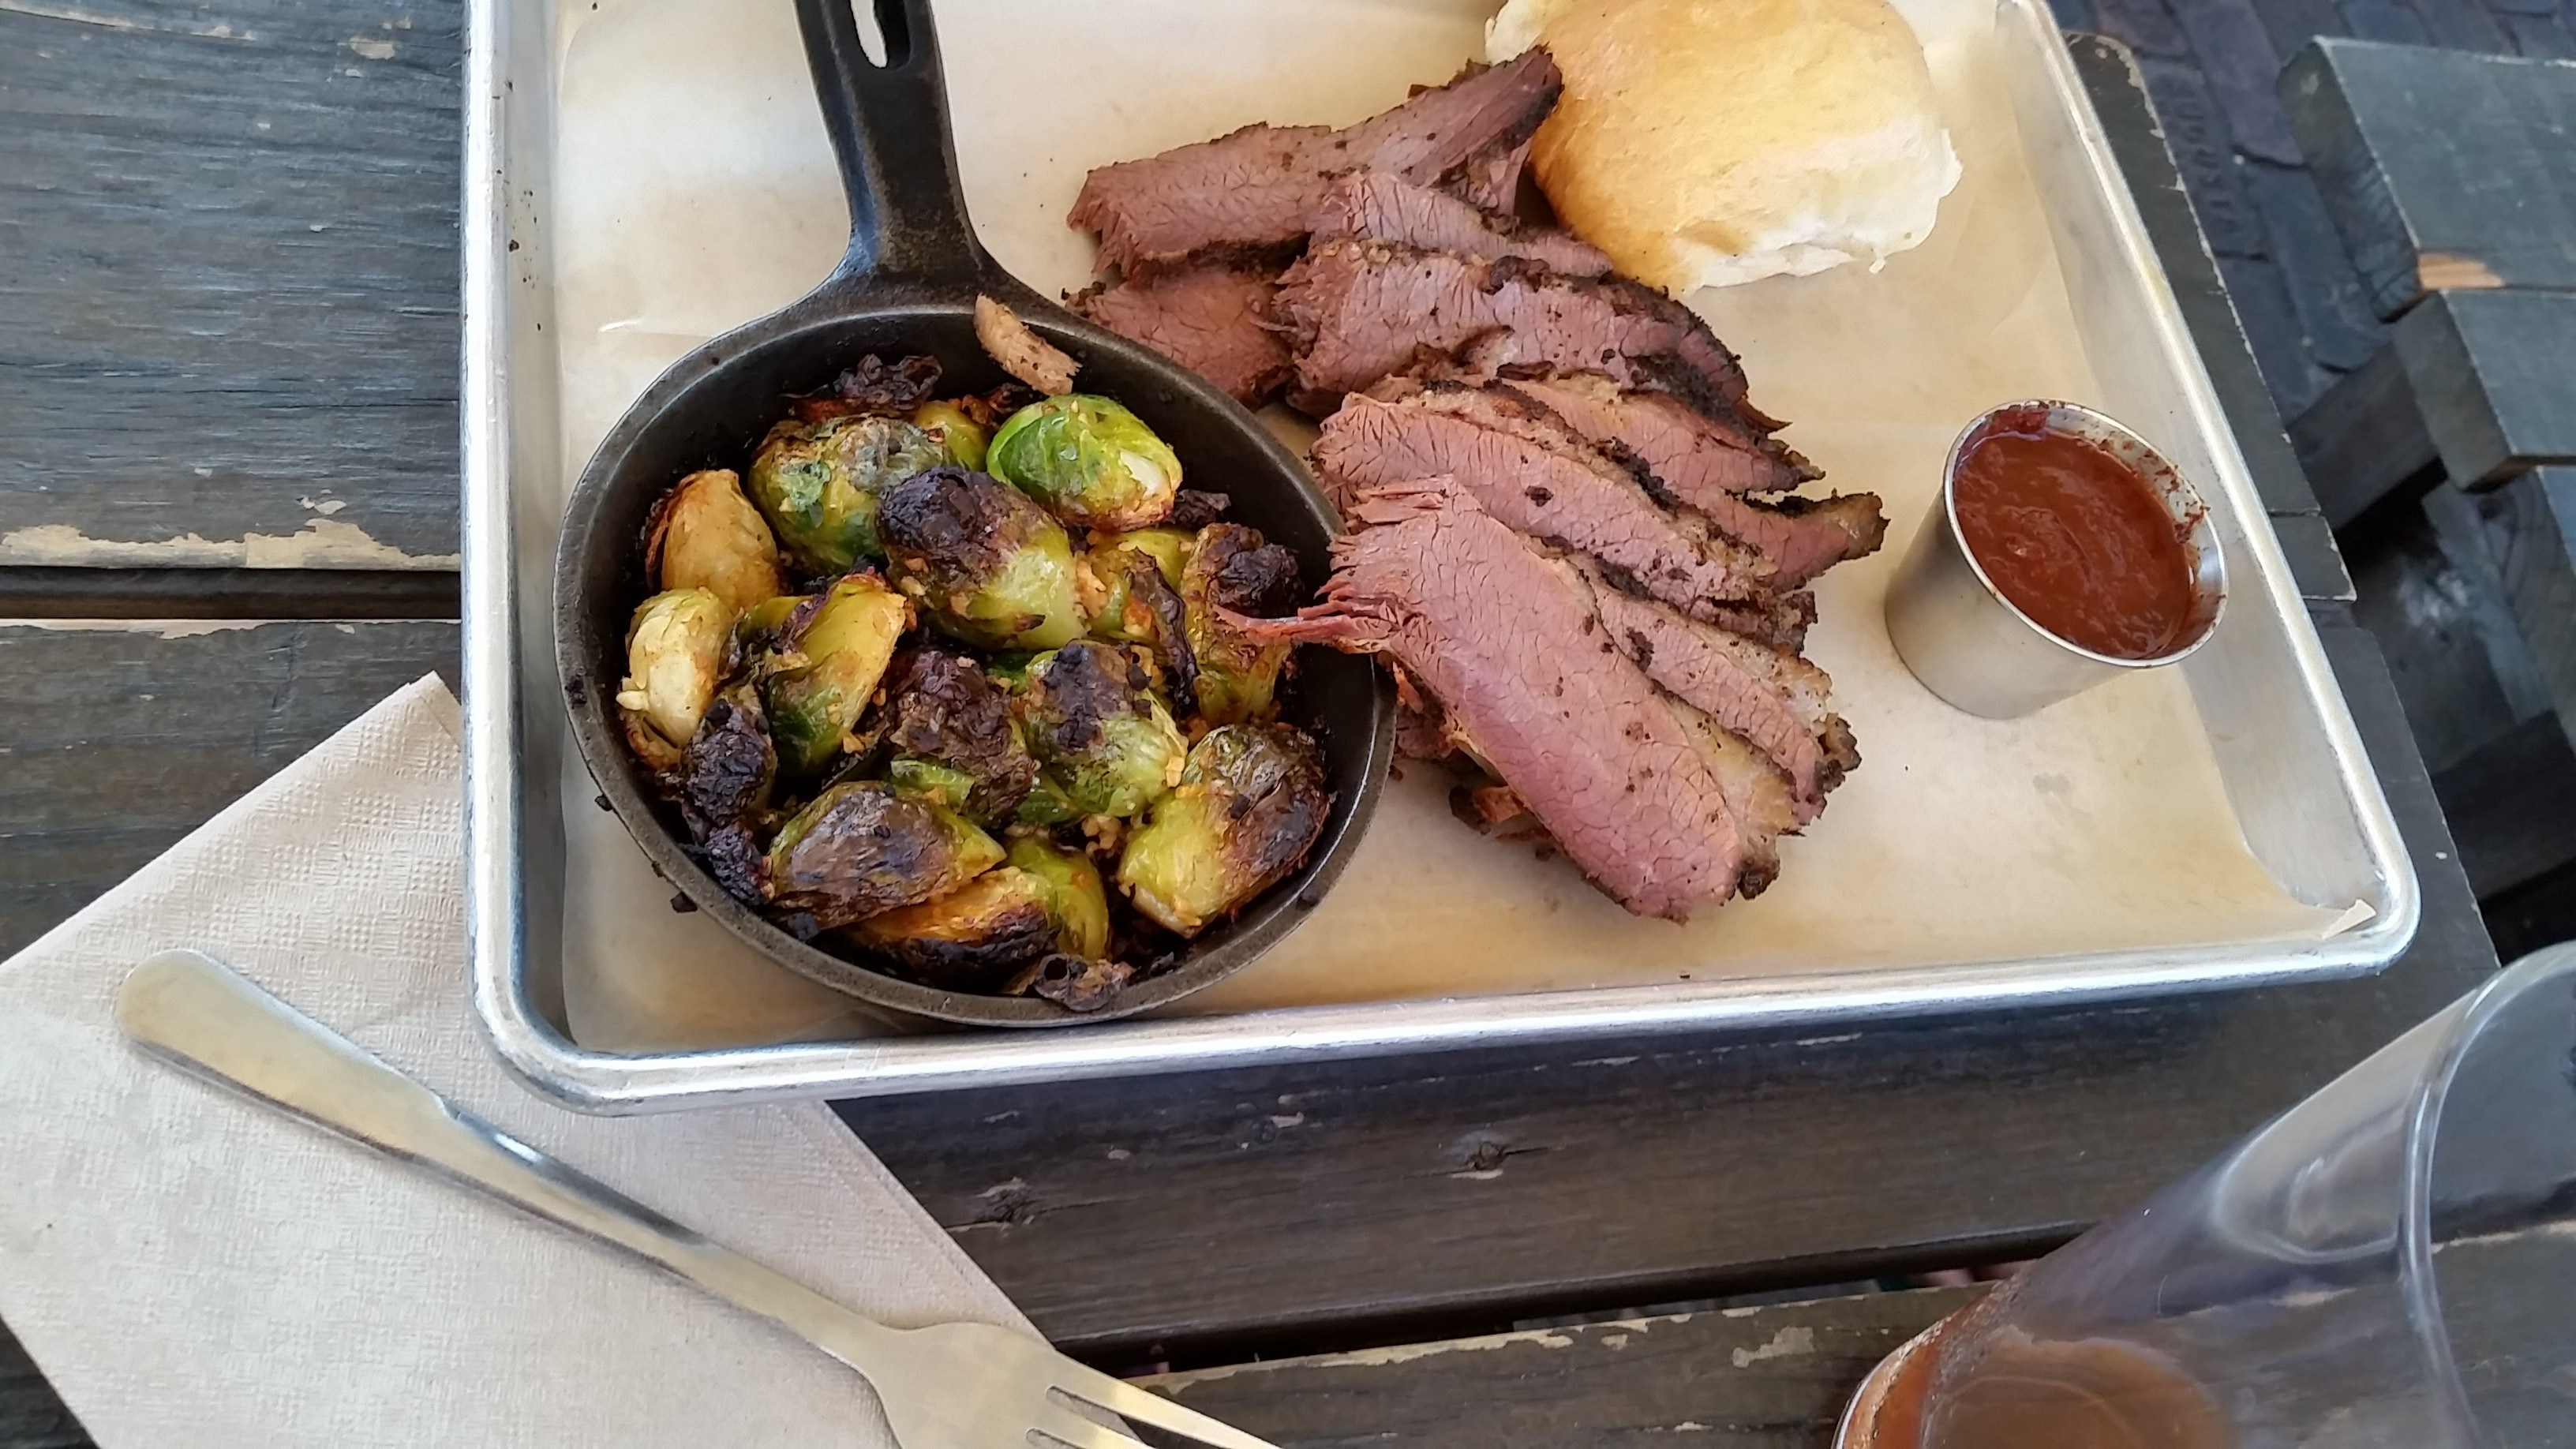 Brussel Sprouts and Brisket